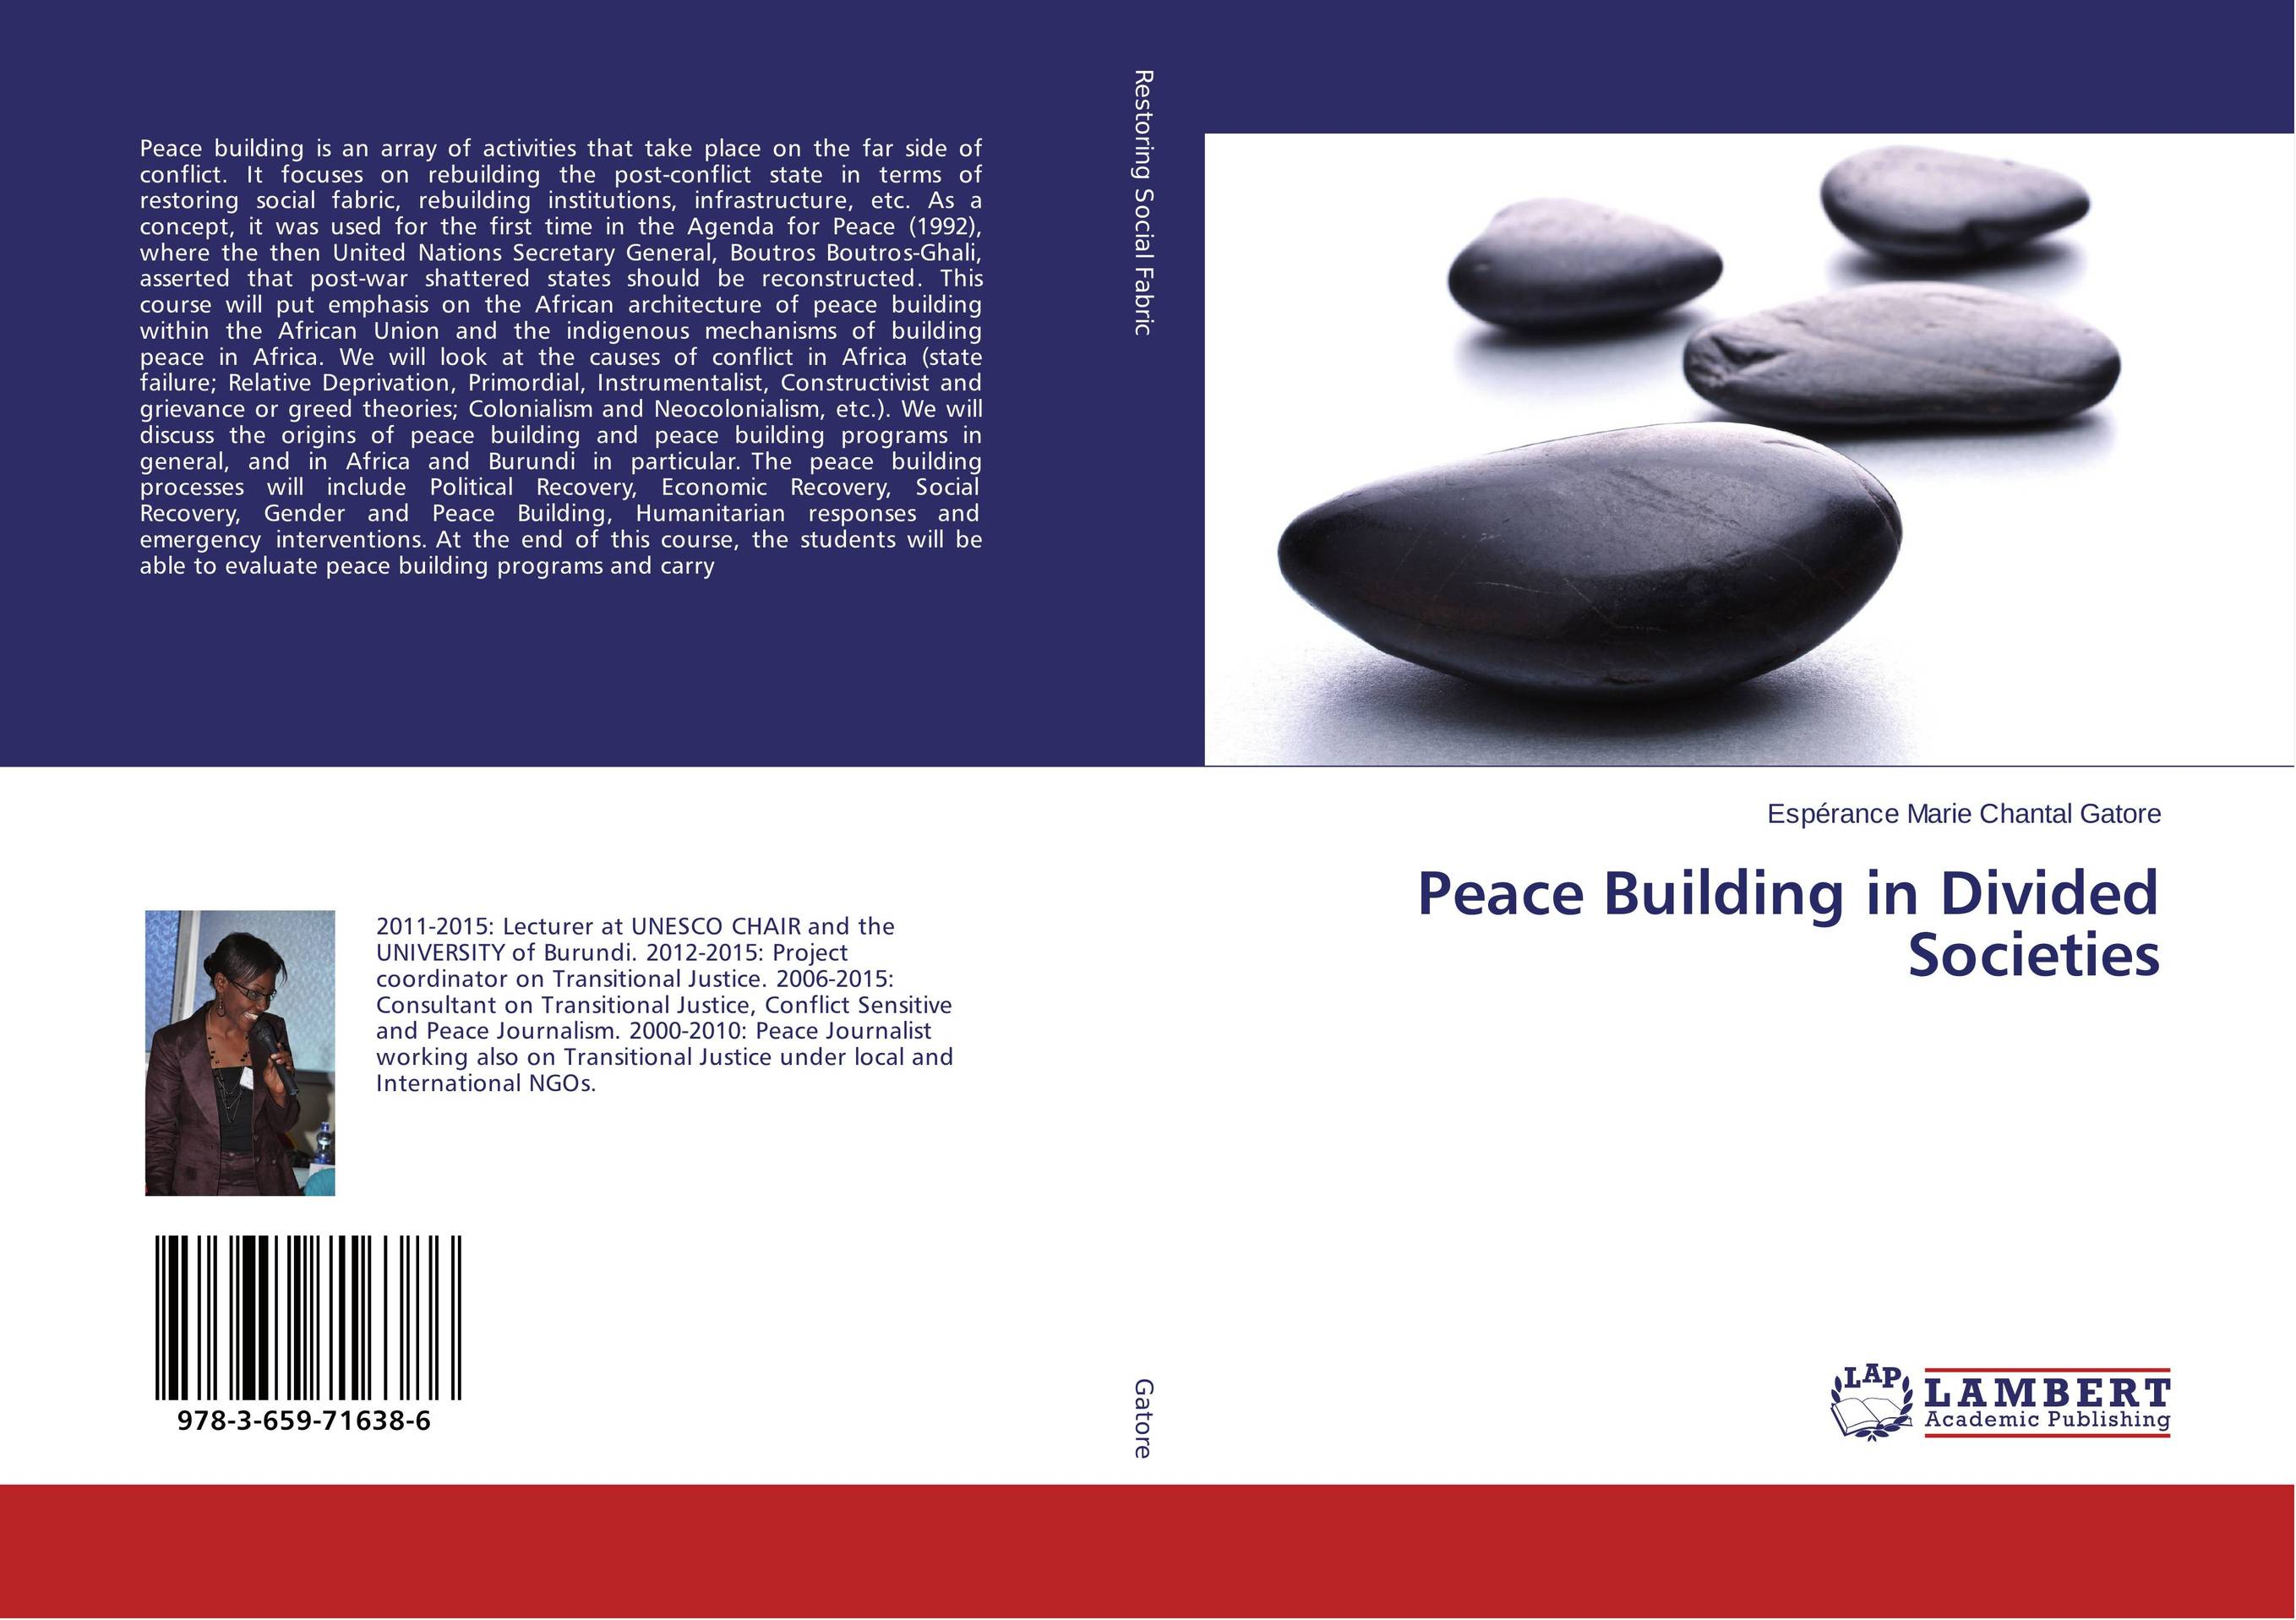 Peace Building in Divided Societies trans border ethnic hegemony and political conflict in africa